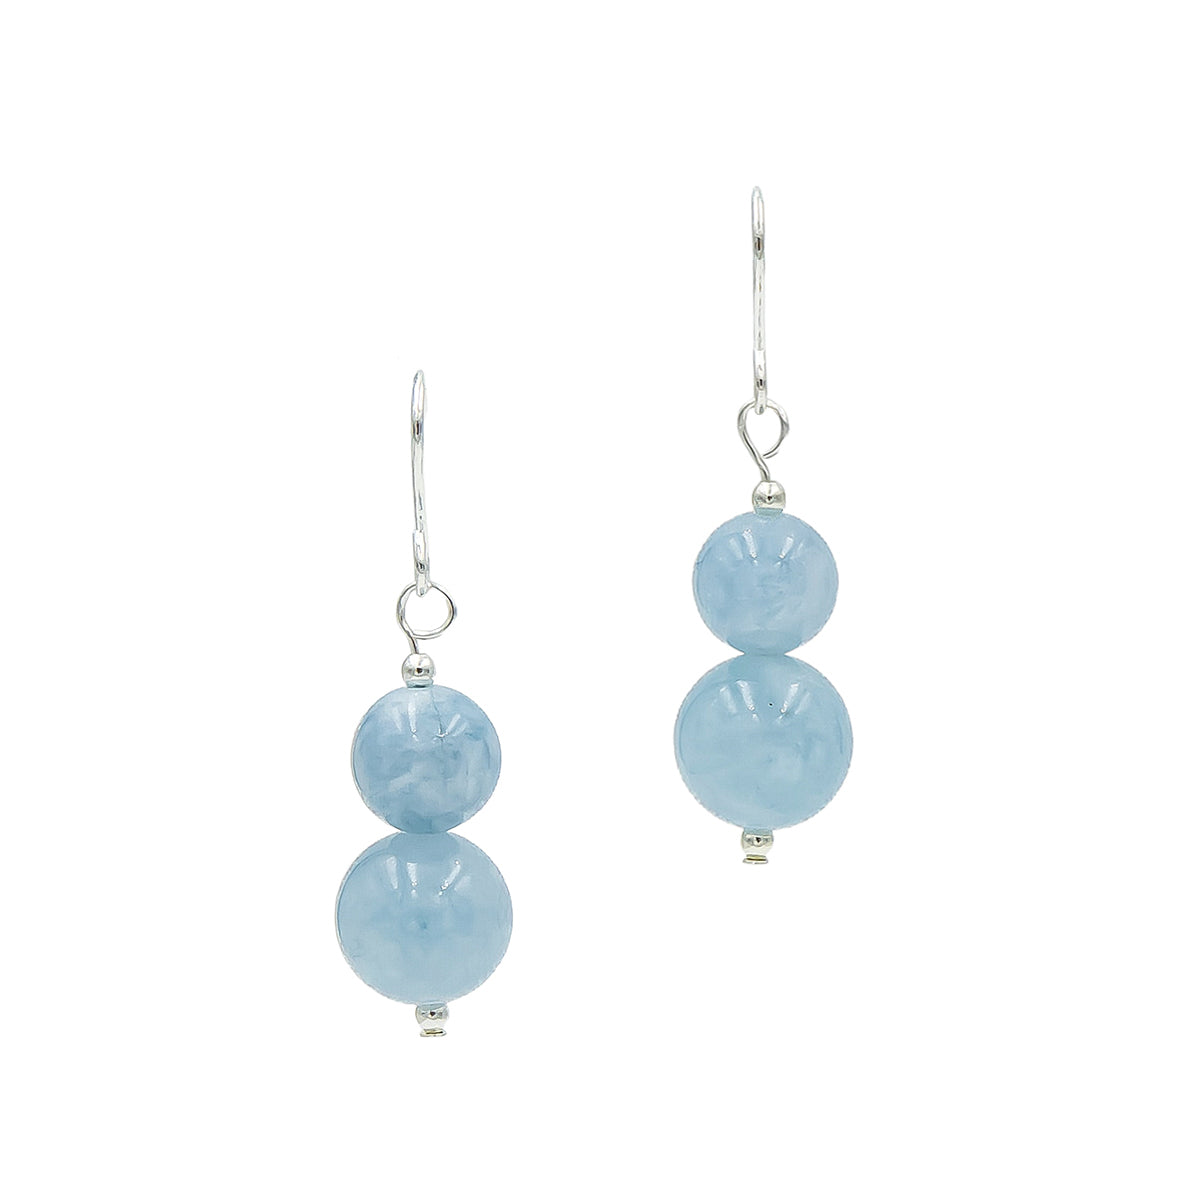 Aquamarine on Silver Handmade Earrings